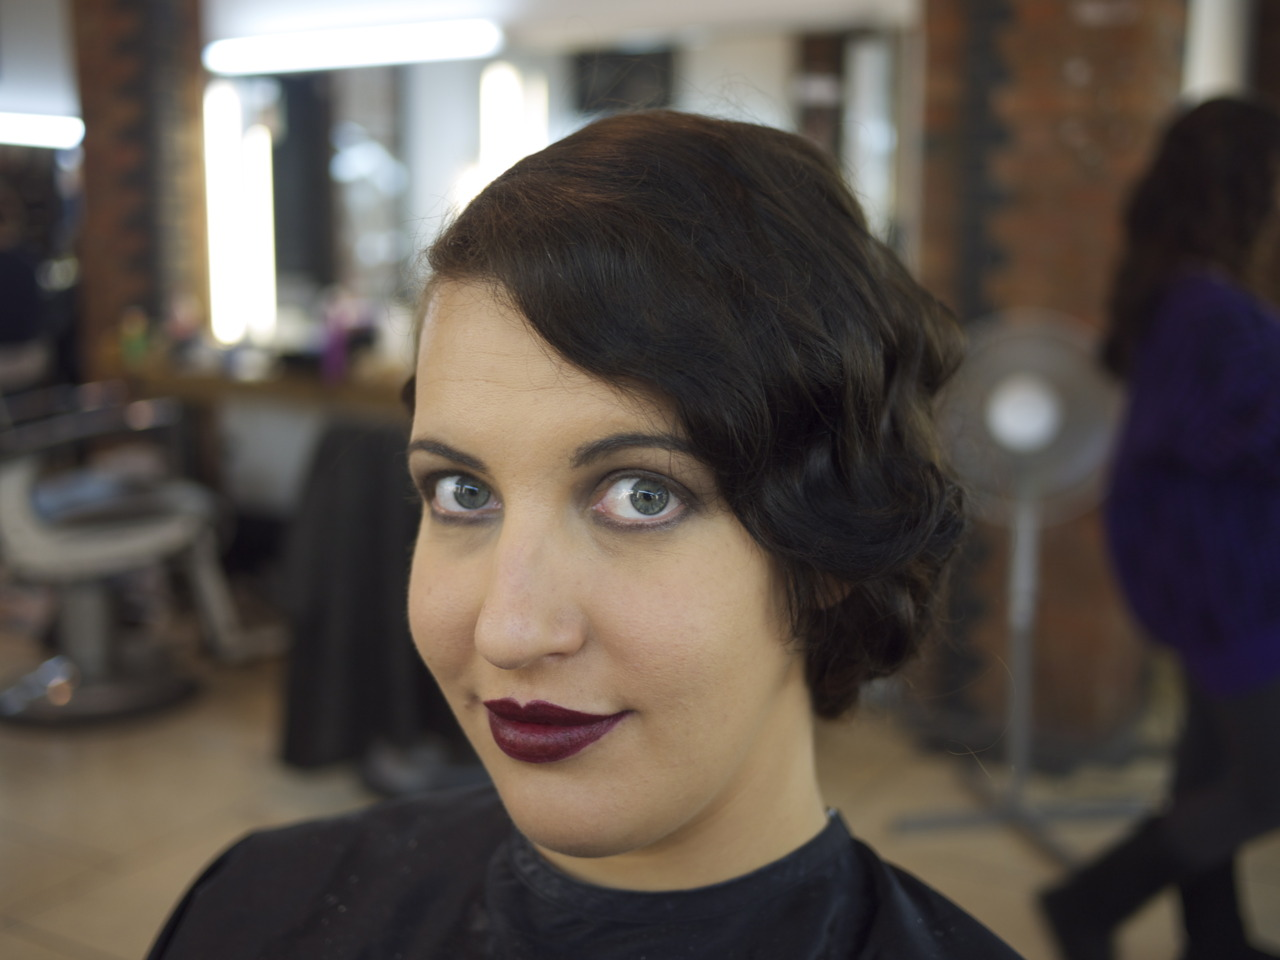 20's finger waves and make-up - November 2011   CB-MA London